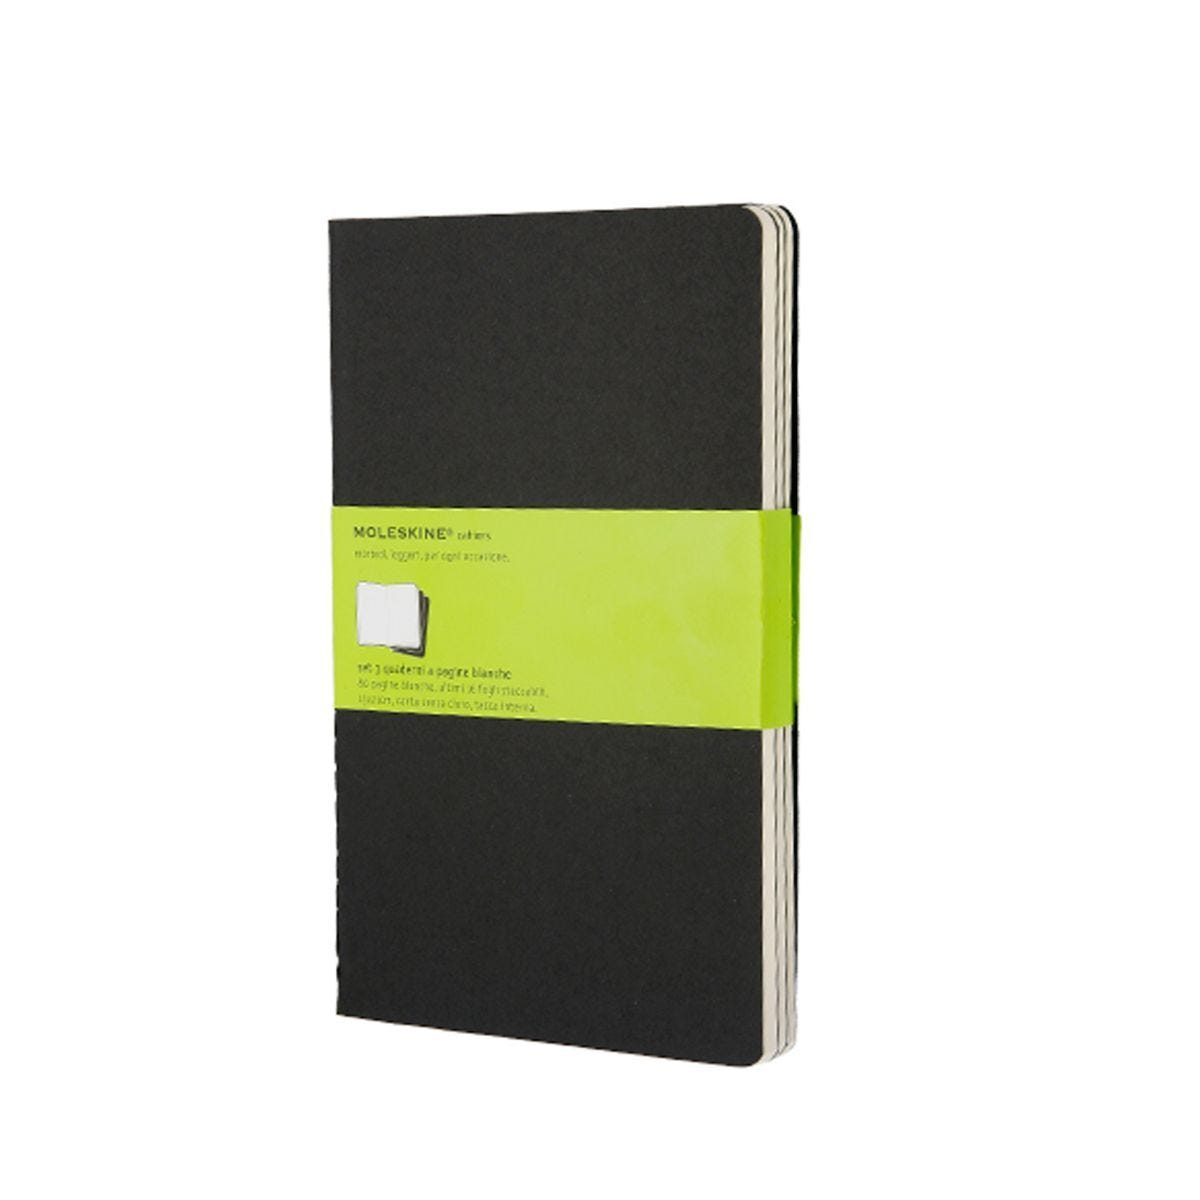 Moleskine Cahier Large Plain Journals Black